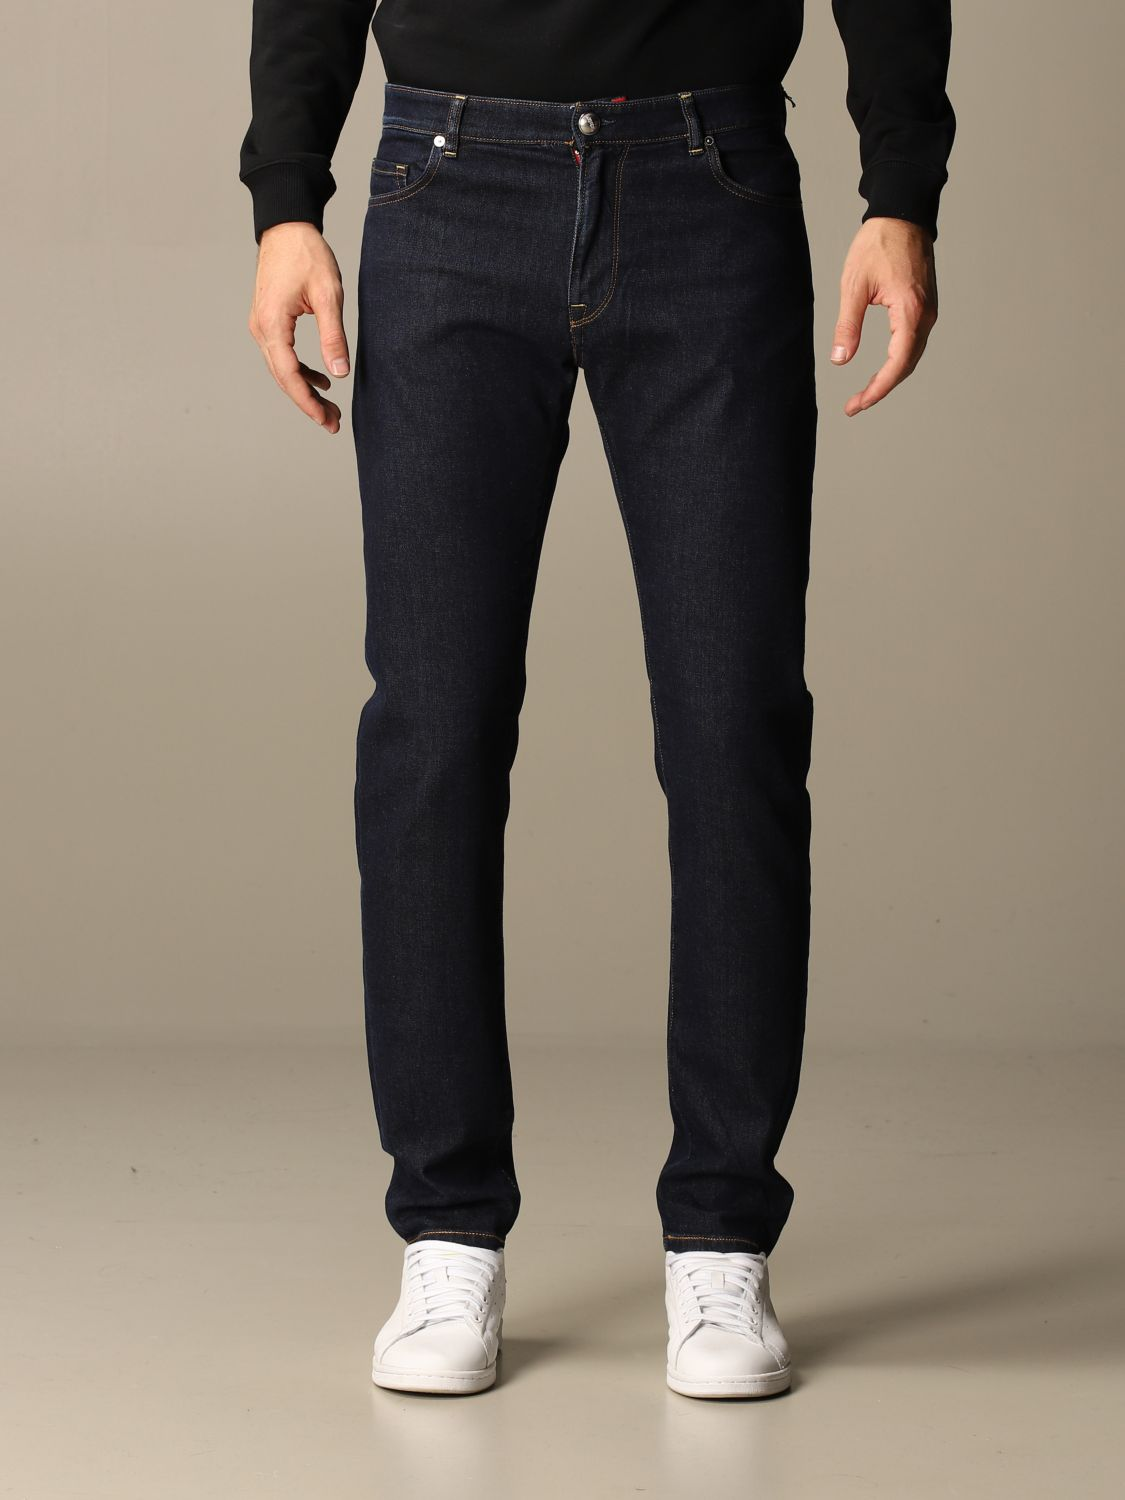 Jeans Brooksfield: Jeans herren Brooksfield blau 1